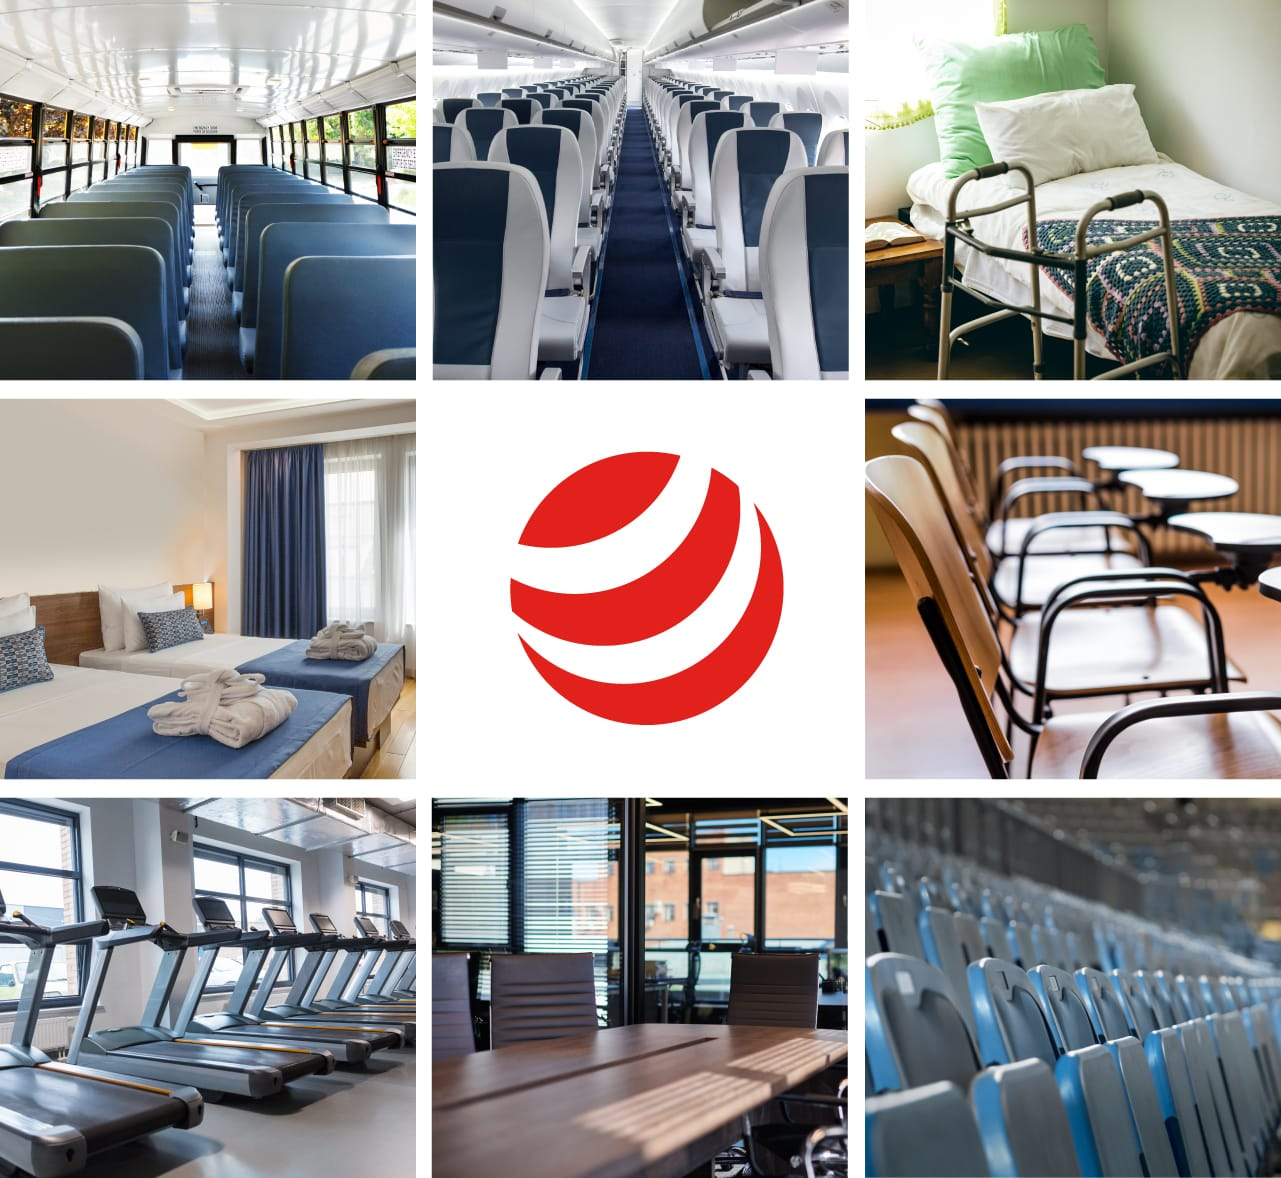 Product use images: kitchens, airplanes, nursing homes, hotel rooms, classrooms, gyms offices, stadiums